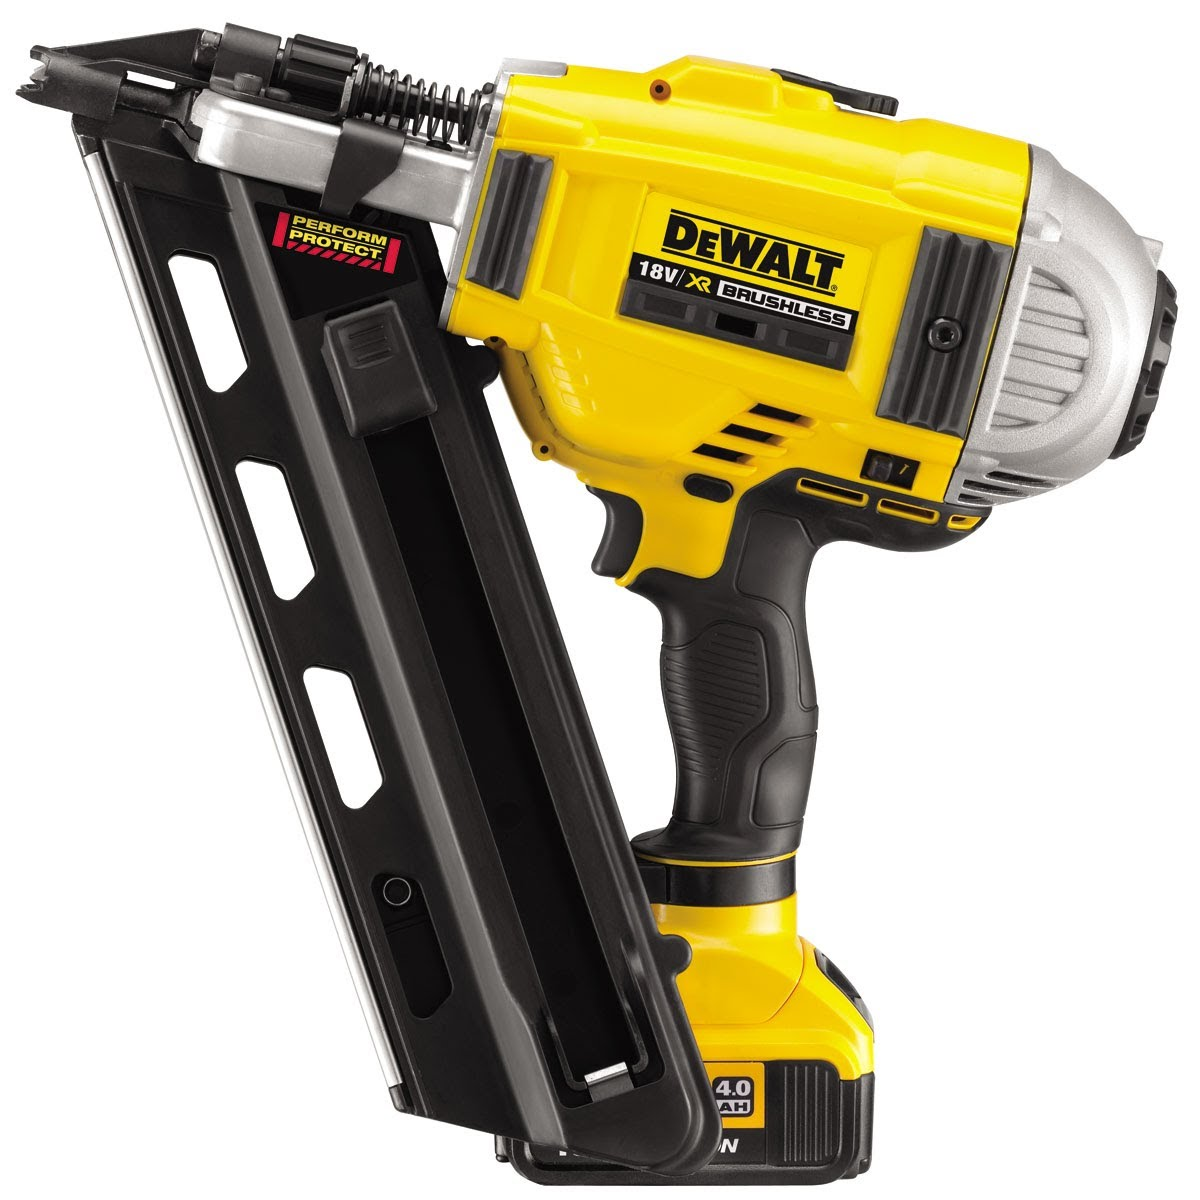 DEWALT DCN690M2 18V XR LI-ION BRUSHLESS FRAMING NAILER WITH 2 x 4Ah Li-ion BATTERIES